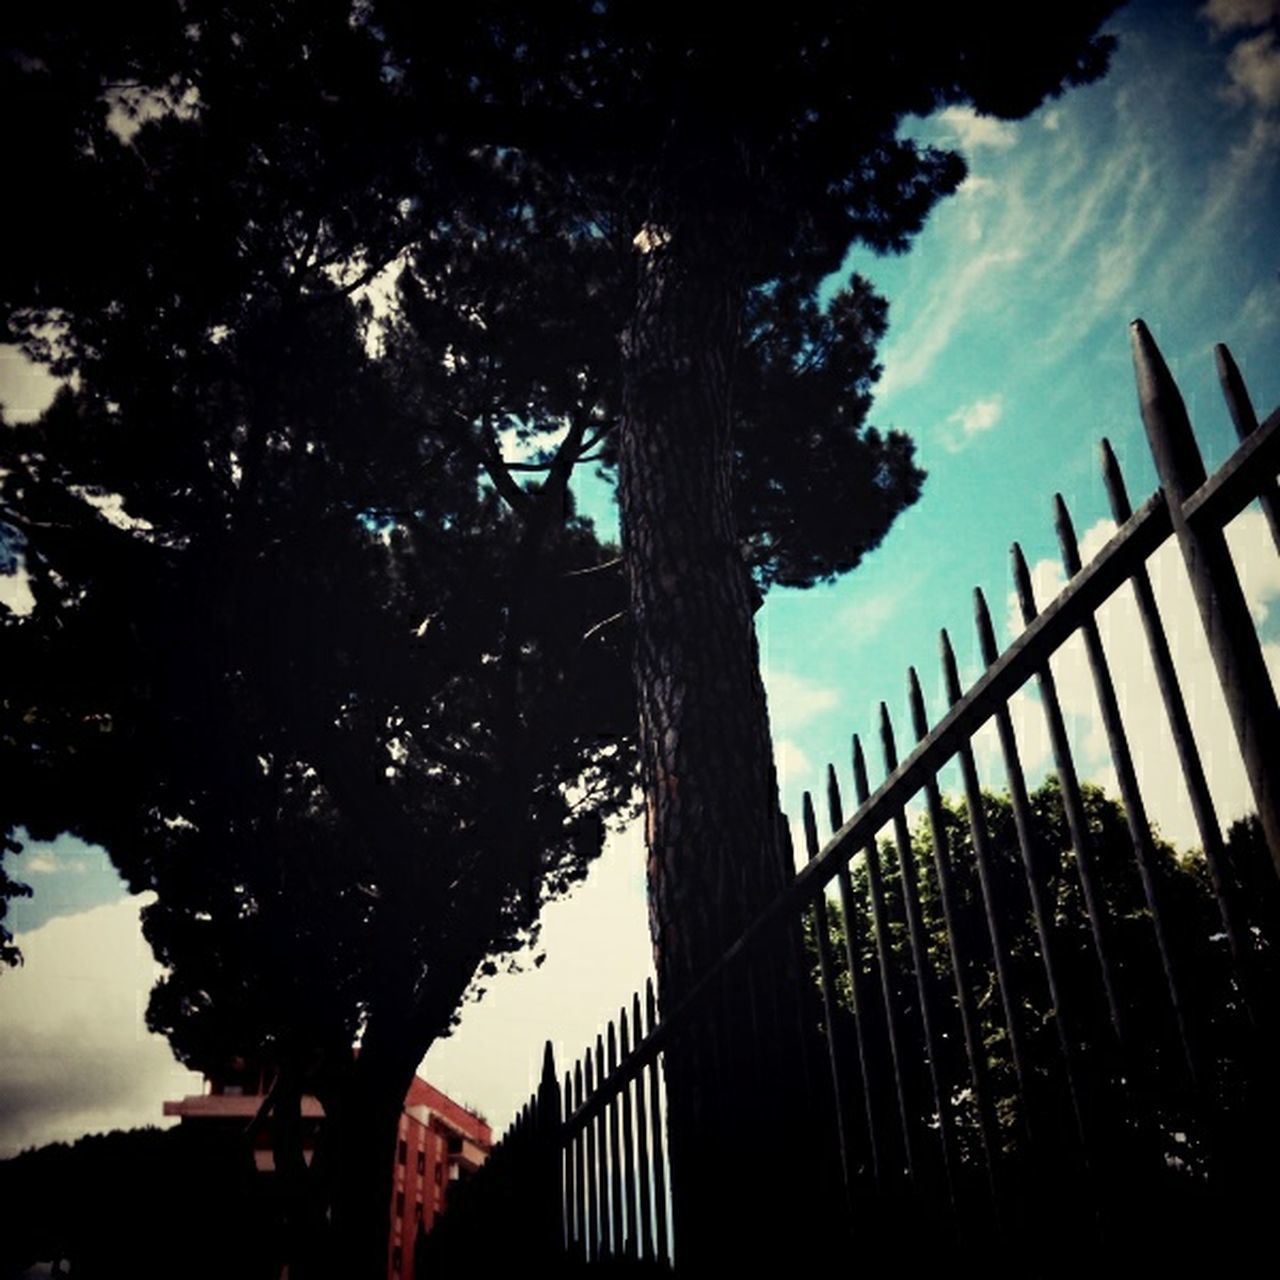 tree, sky, outdoors, no people, architecture, built structure, day, building exterior, nature